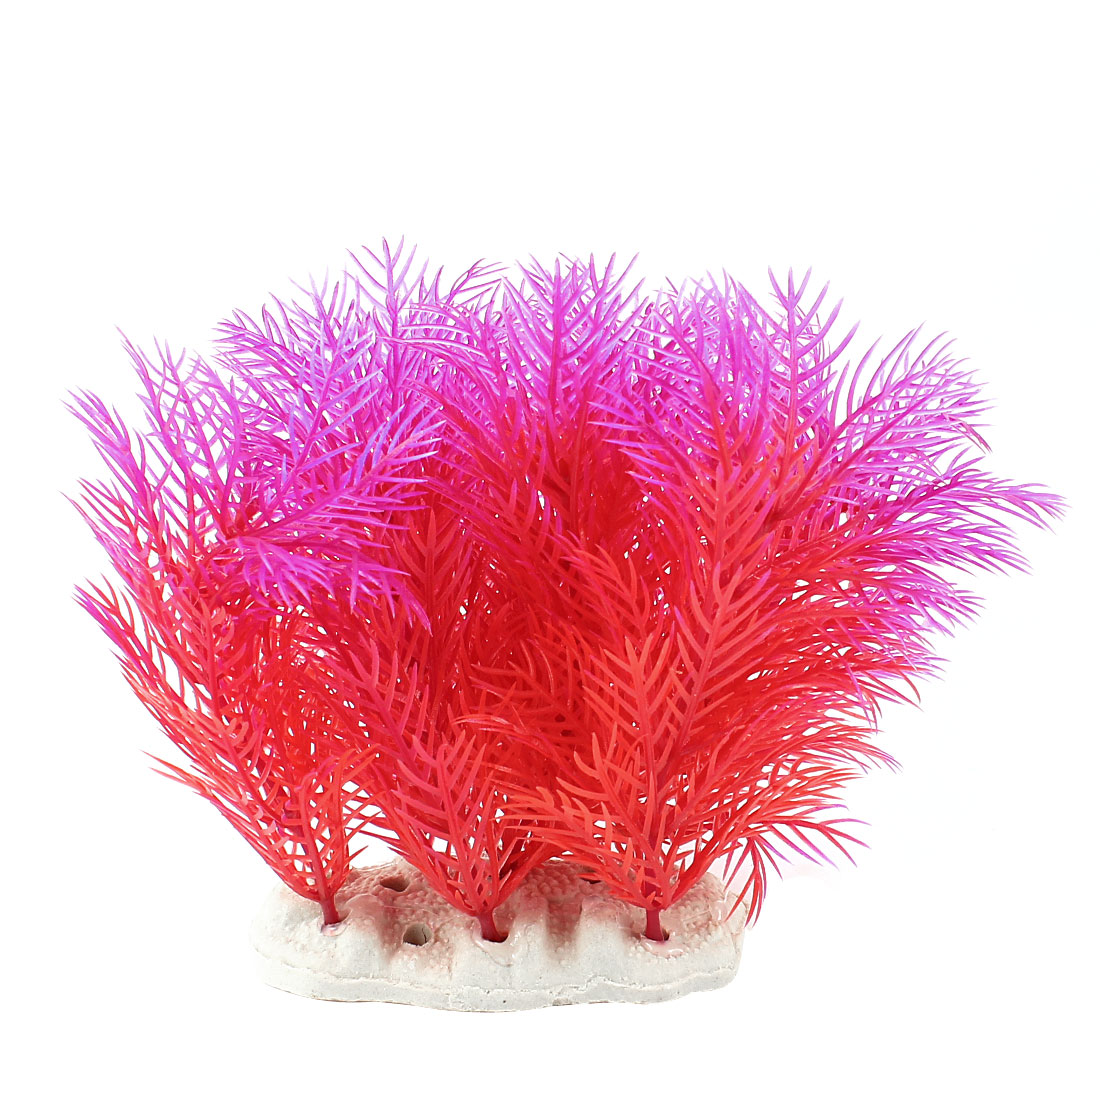 "Aquarium Emulational Aquatic Underwater Plant Fuchsia Red 4.7"" Height"